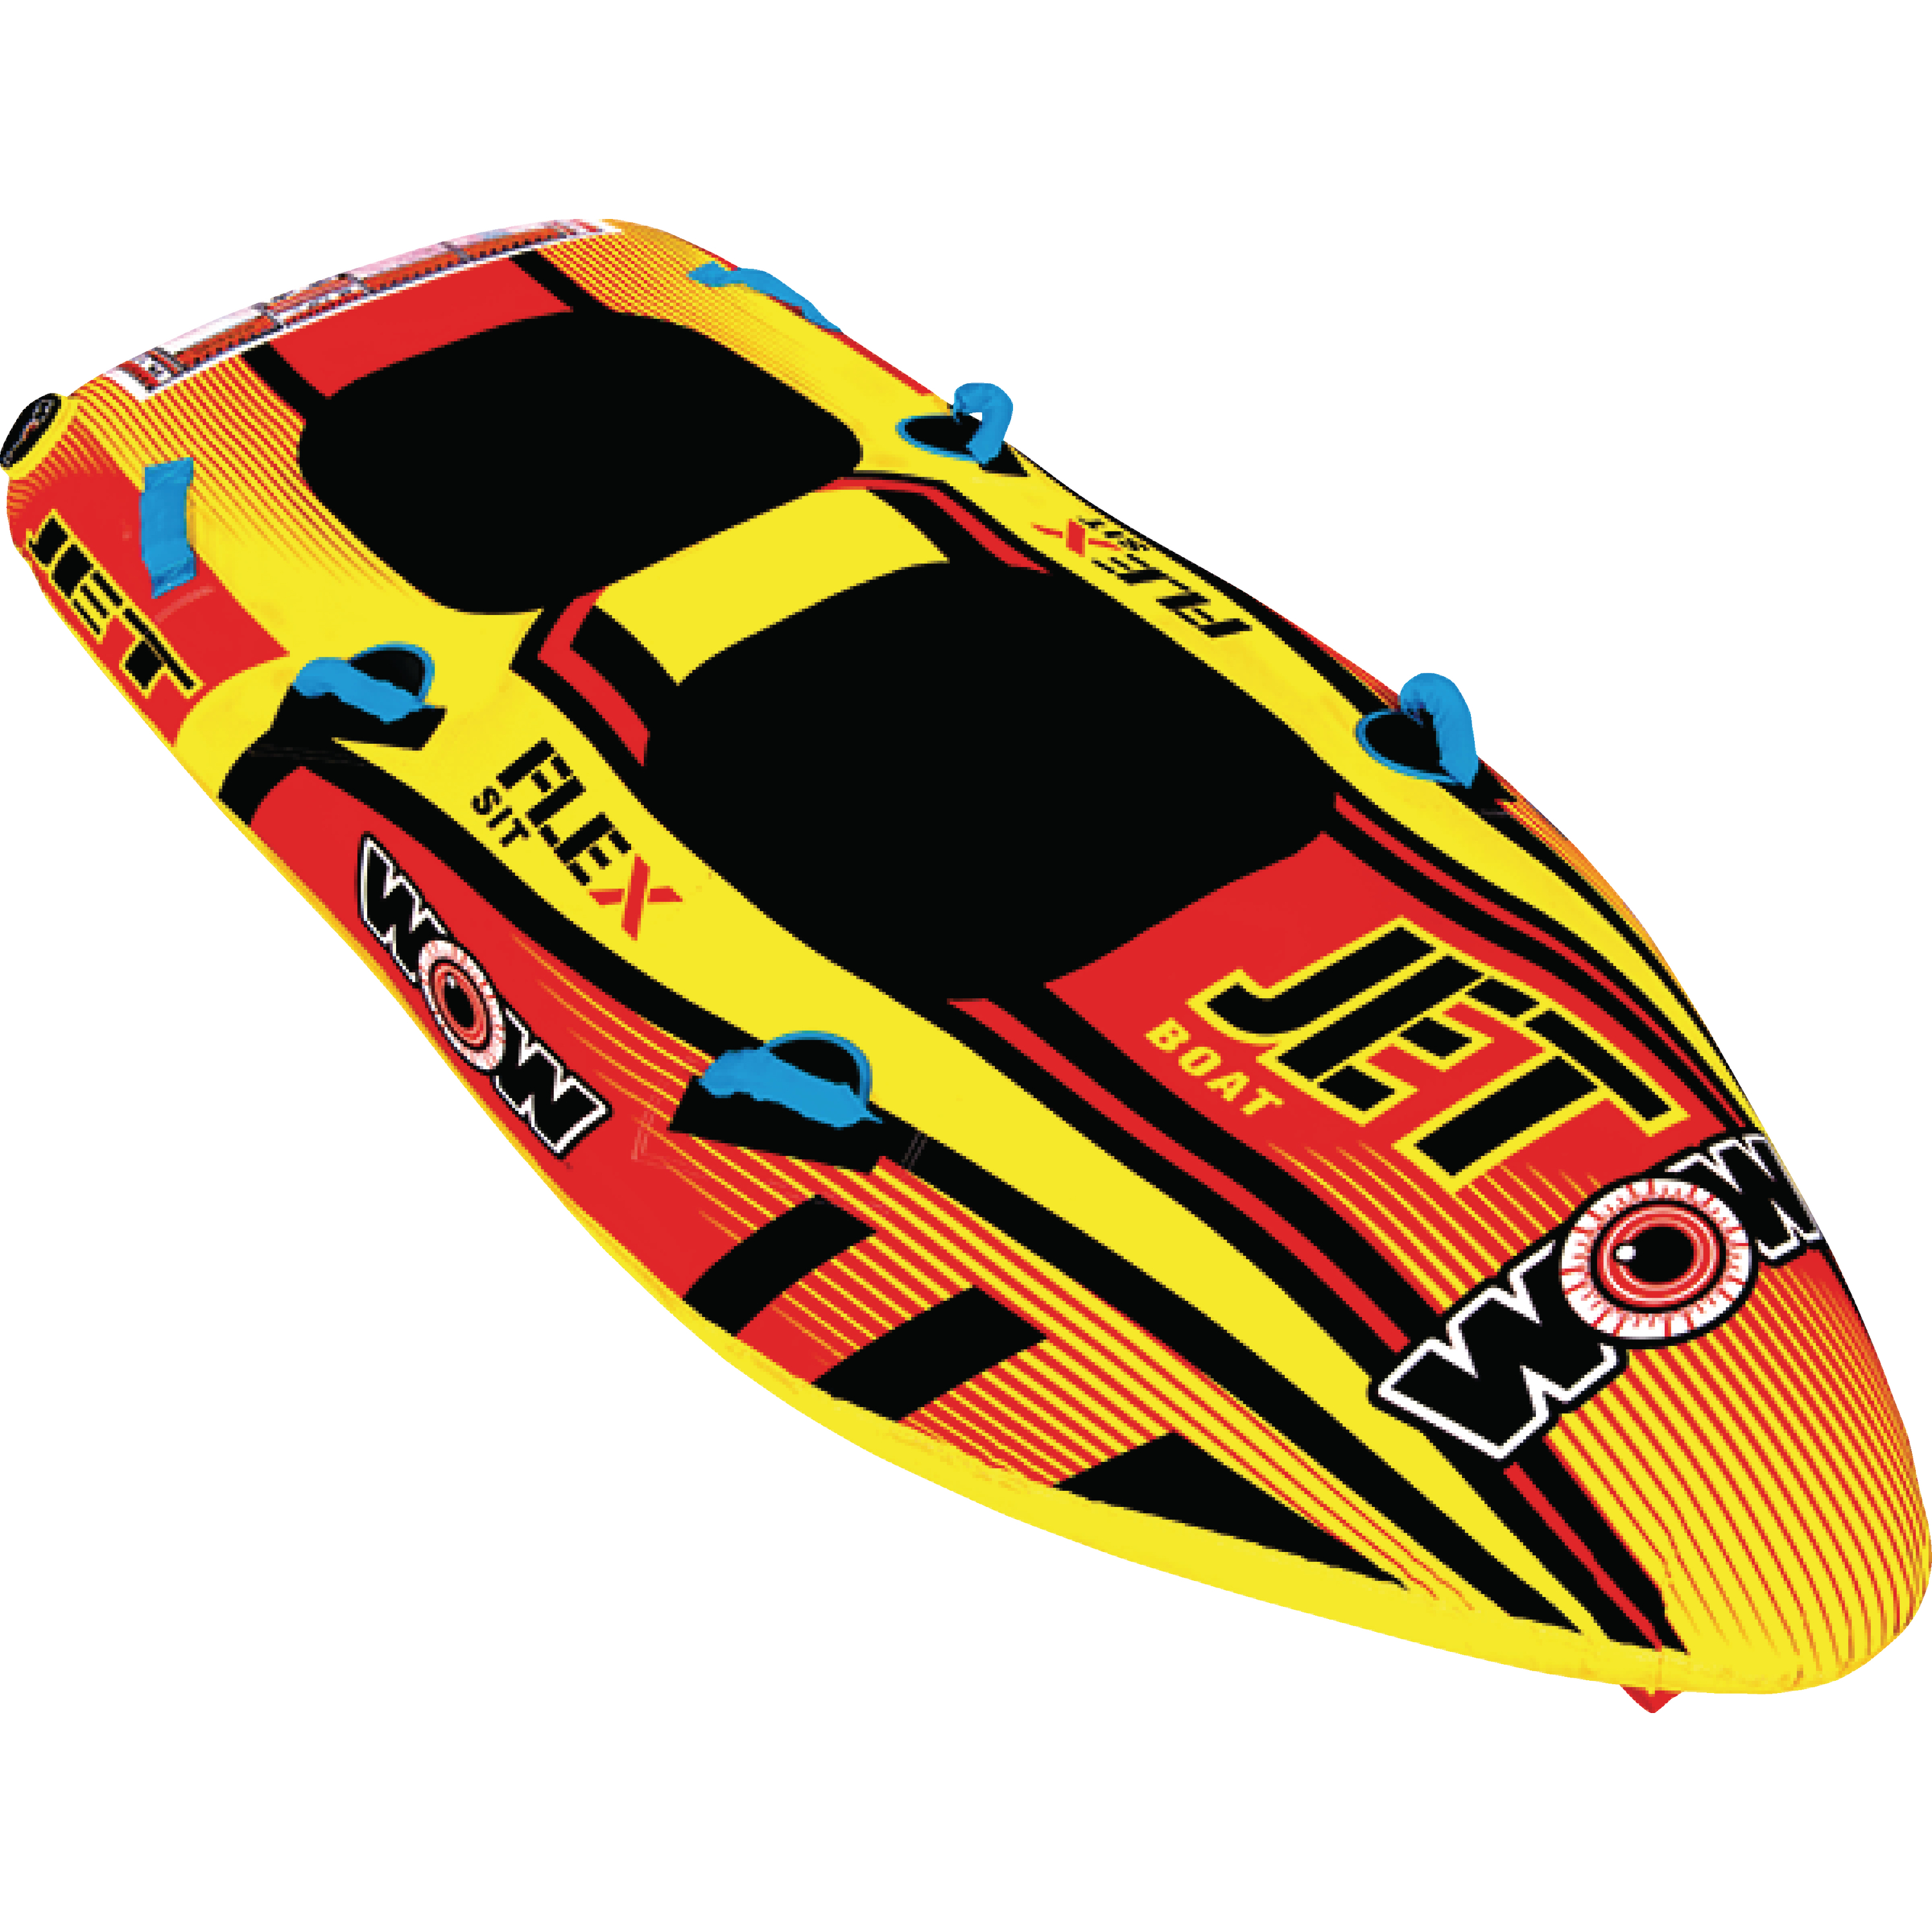 WOW 171030 Jet Boat Inflatable Towable for 1-2 Riders by WOW Watersports USA